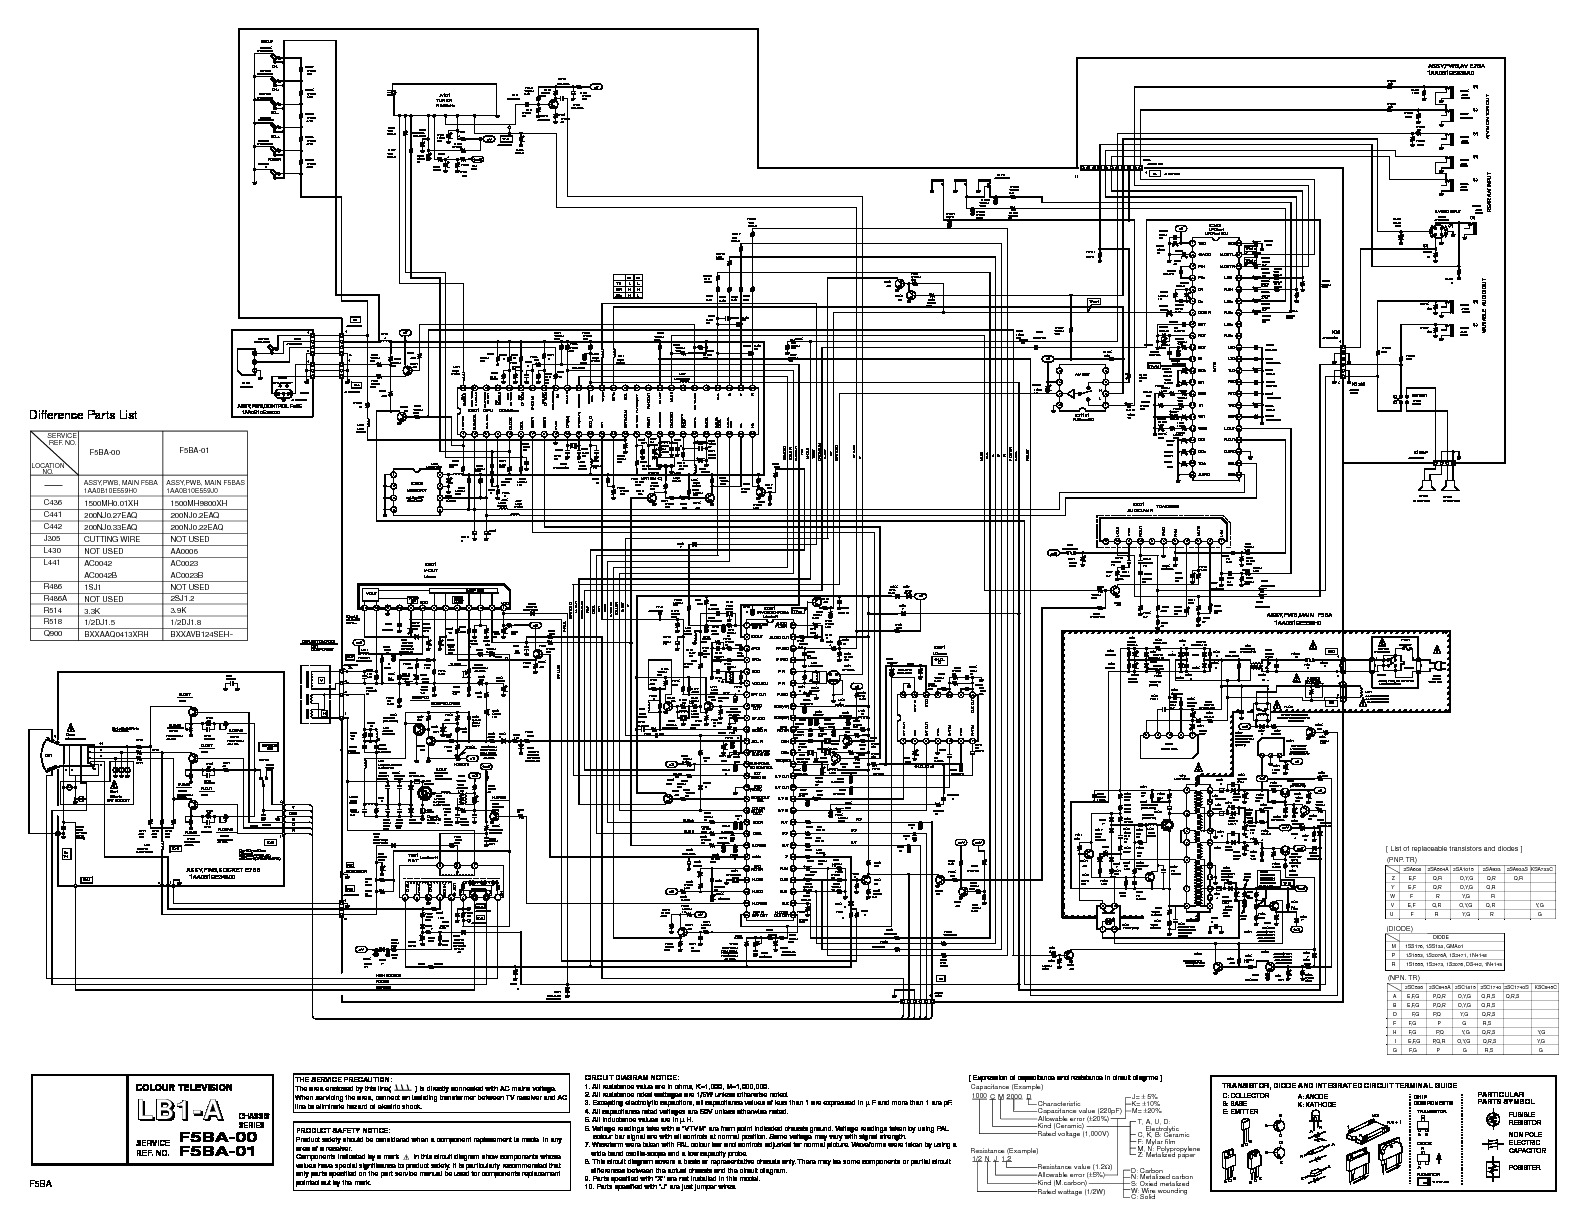 Sanyo Tv Circuit Diagram Great Design Of Wiring T V Free Download Get Image About Schematic